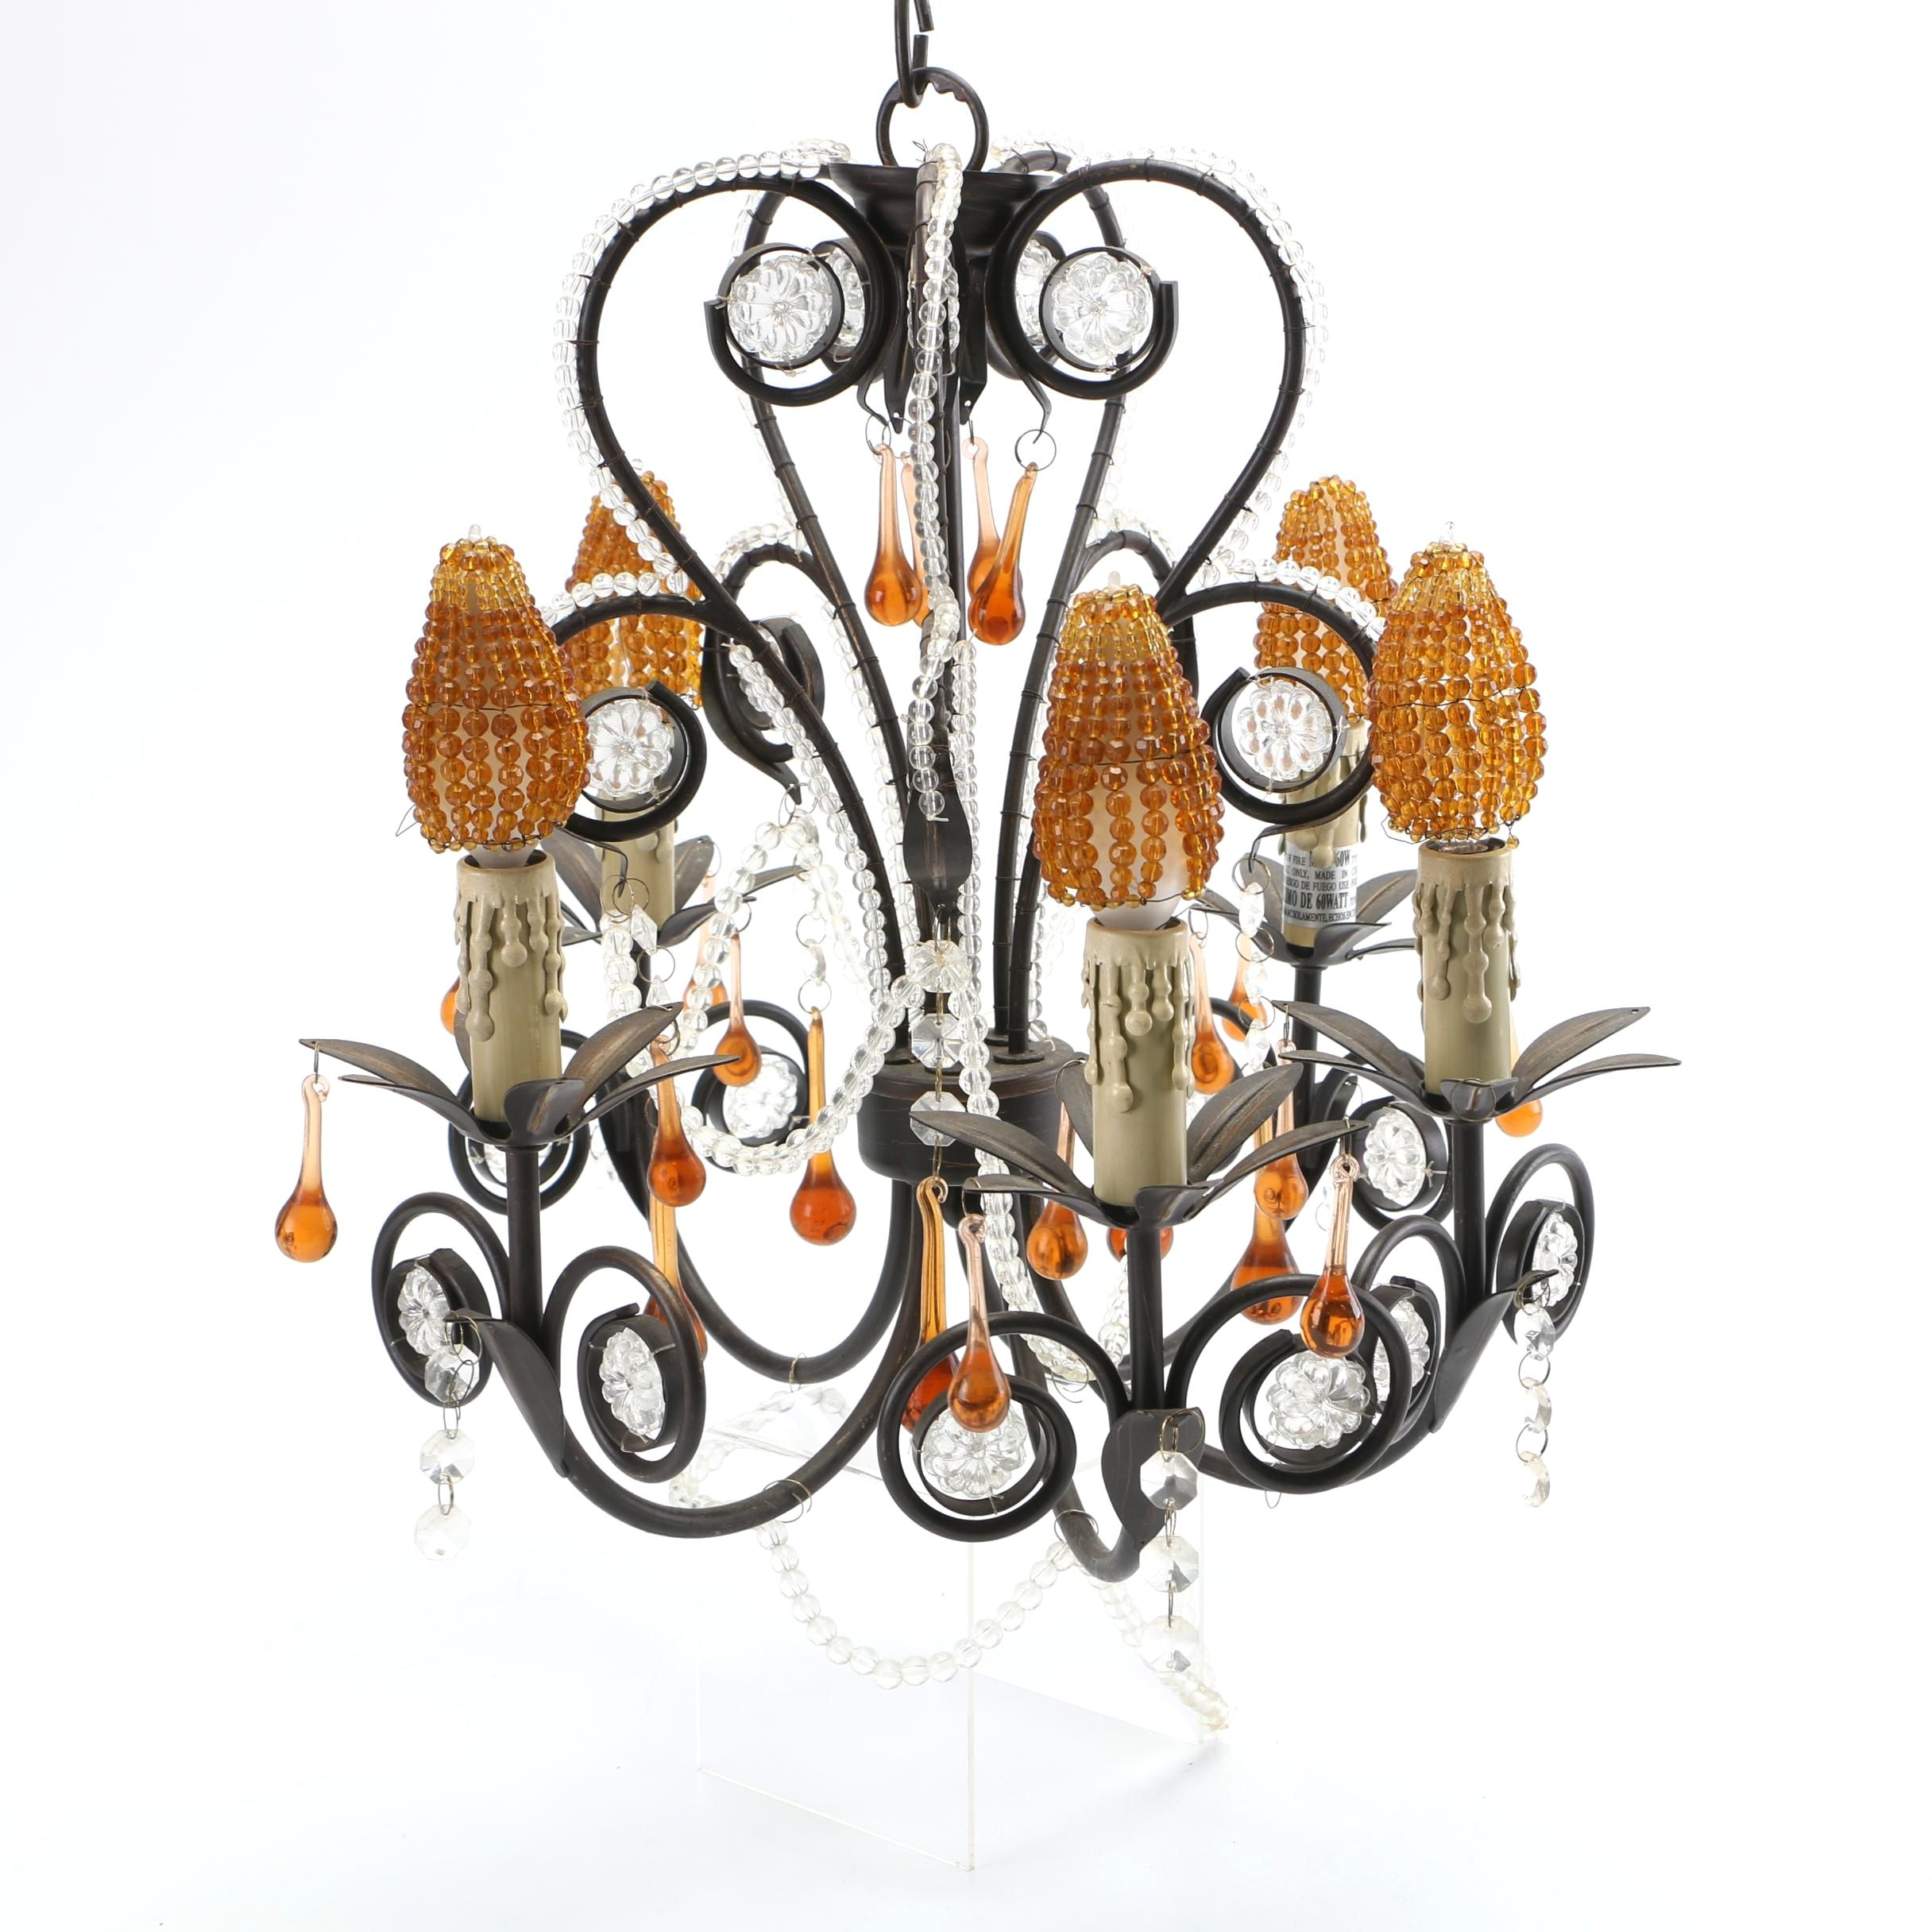 Vintage Scrolled Black Metal Five-Arm Chandelier with Clear and Amber Beading